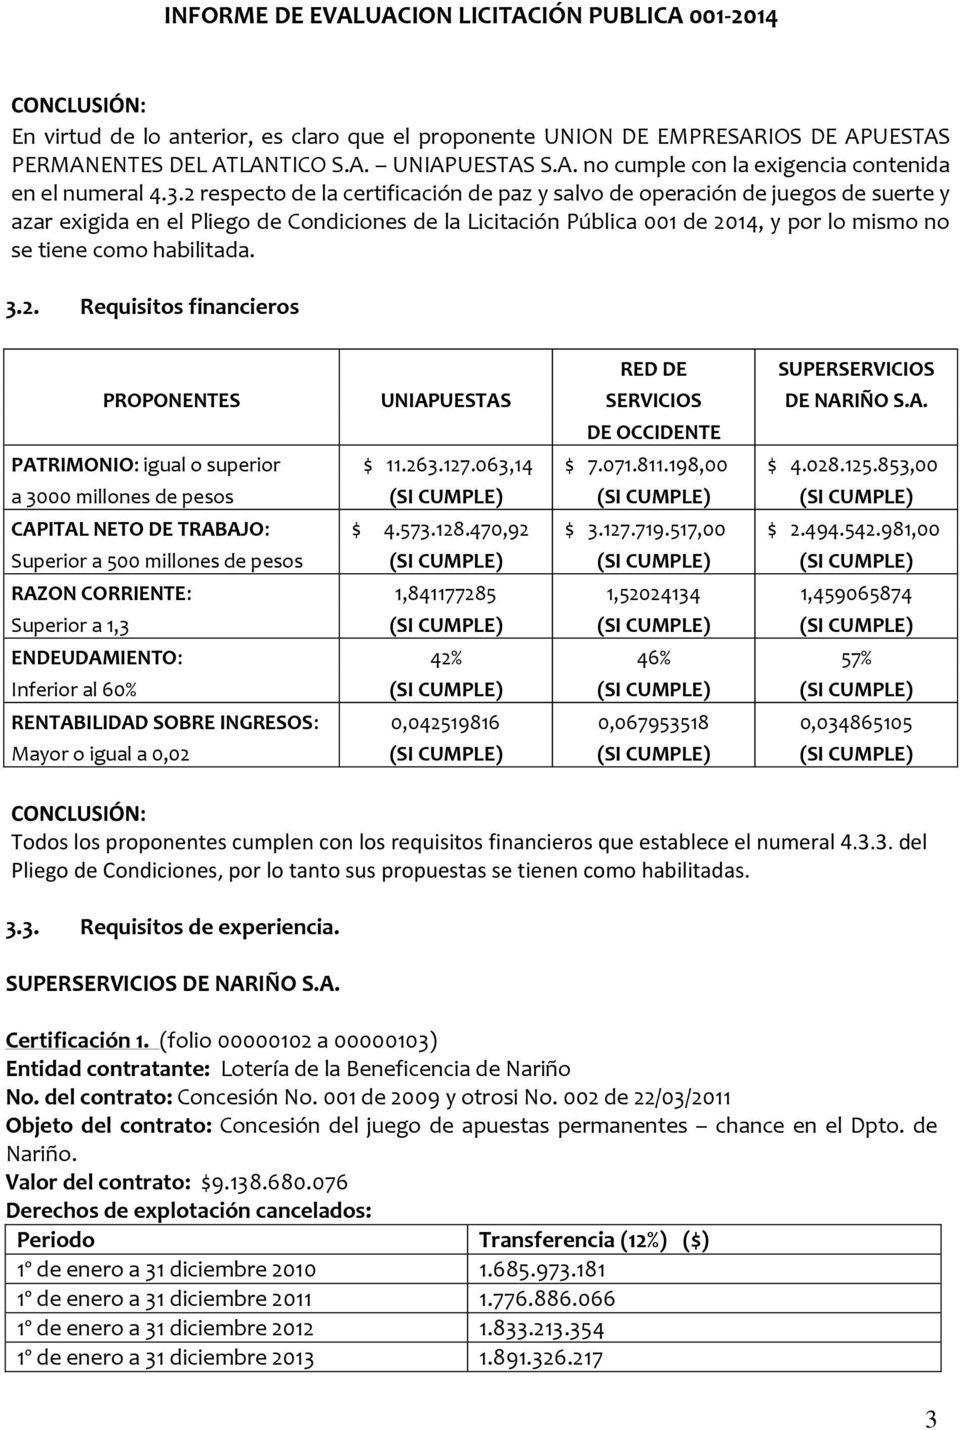 habilitada. 3.2. Requisitos financieros RED DE SUPERSERVICIOS PROPONENTES UNIAPUESTAS SERVICIOS DE NARIÑO S.A. DE OCCIDENTE PATRIMONIO: igual o superior $ 11.263.127.063,14 $ 7.071.811.198,00 $ 4.028.